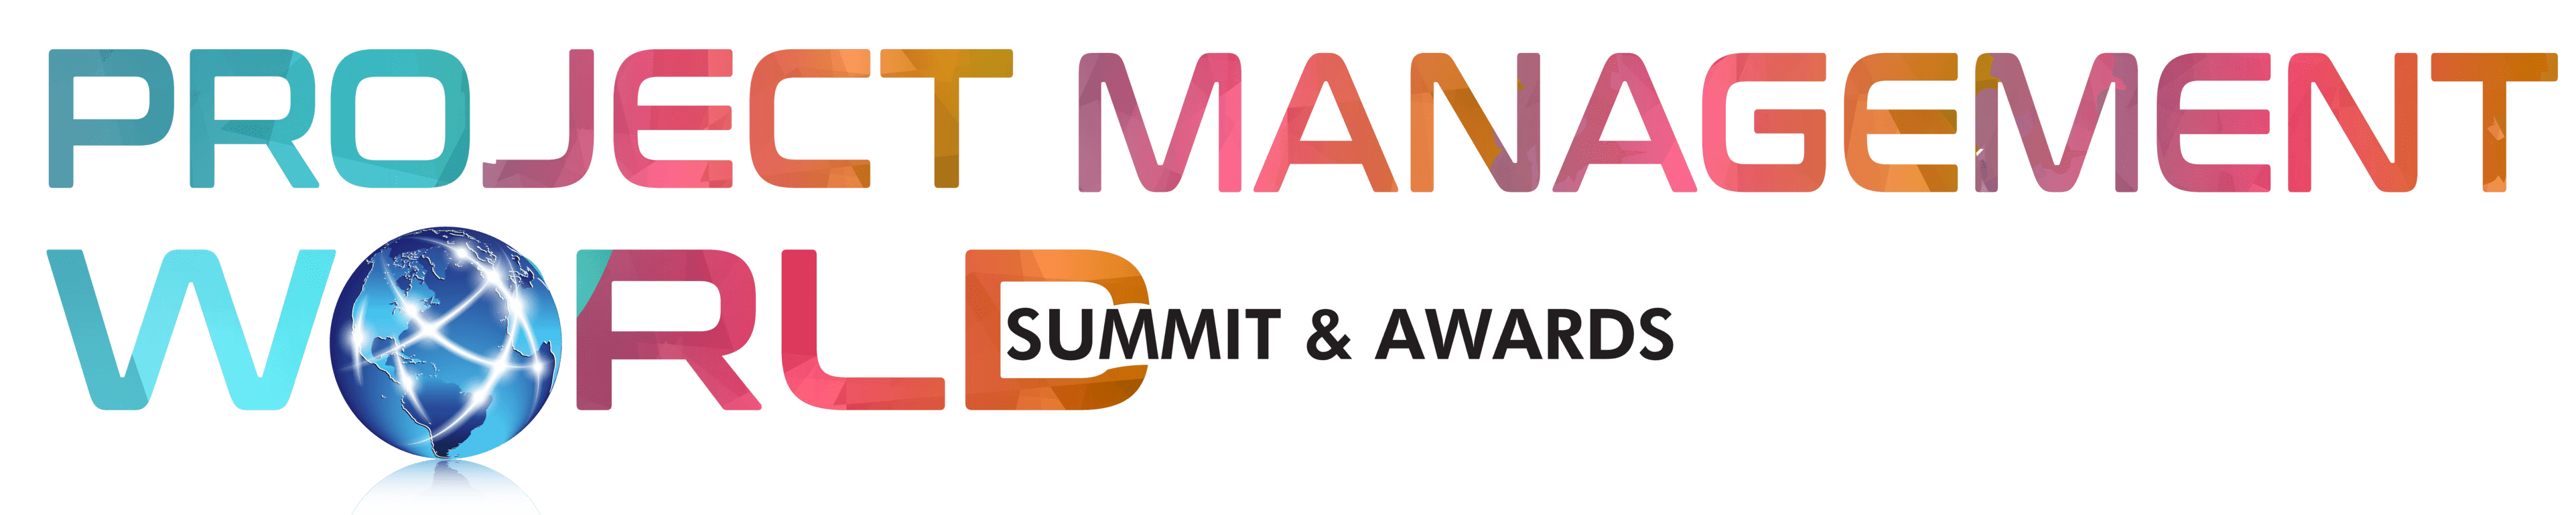 Project Management World Summit & Awards 2019